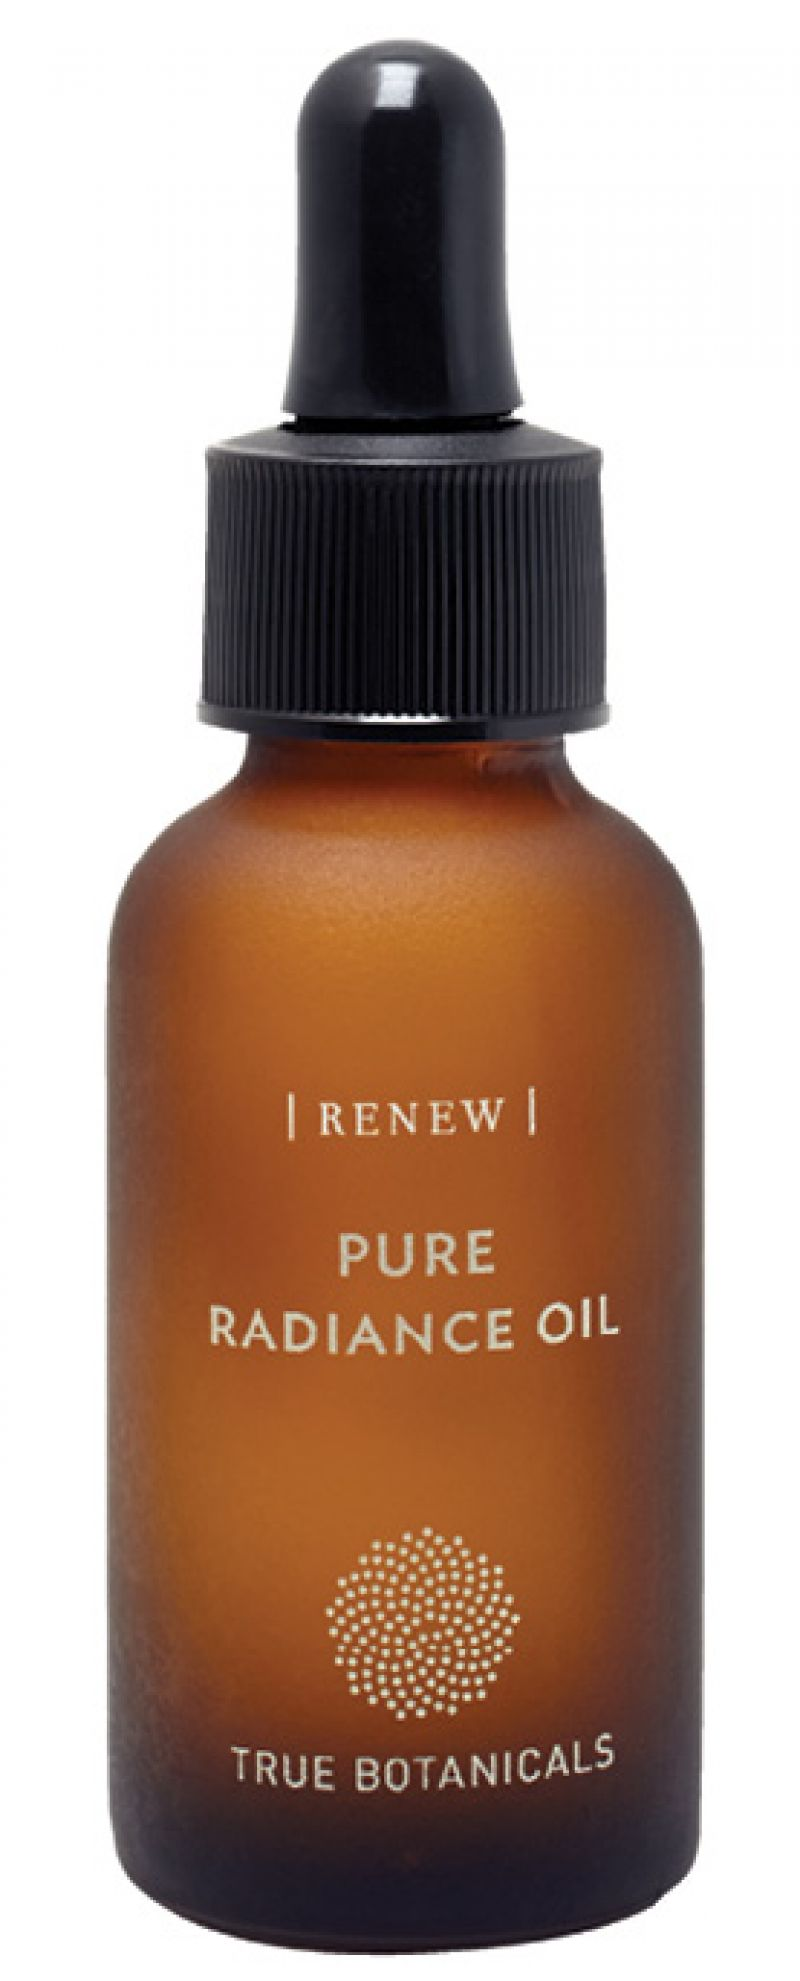 Renew Pure Radiance Oil by True Botanicals